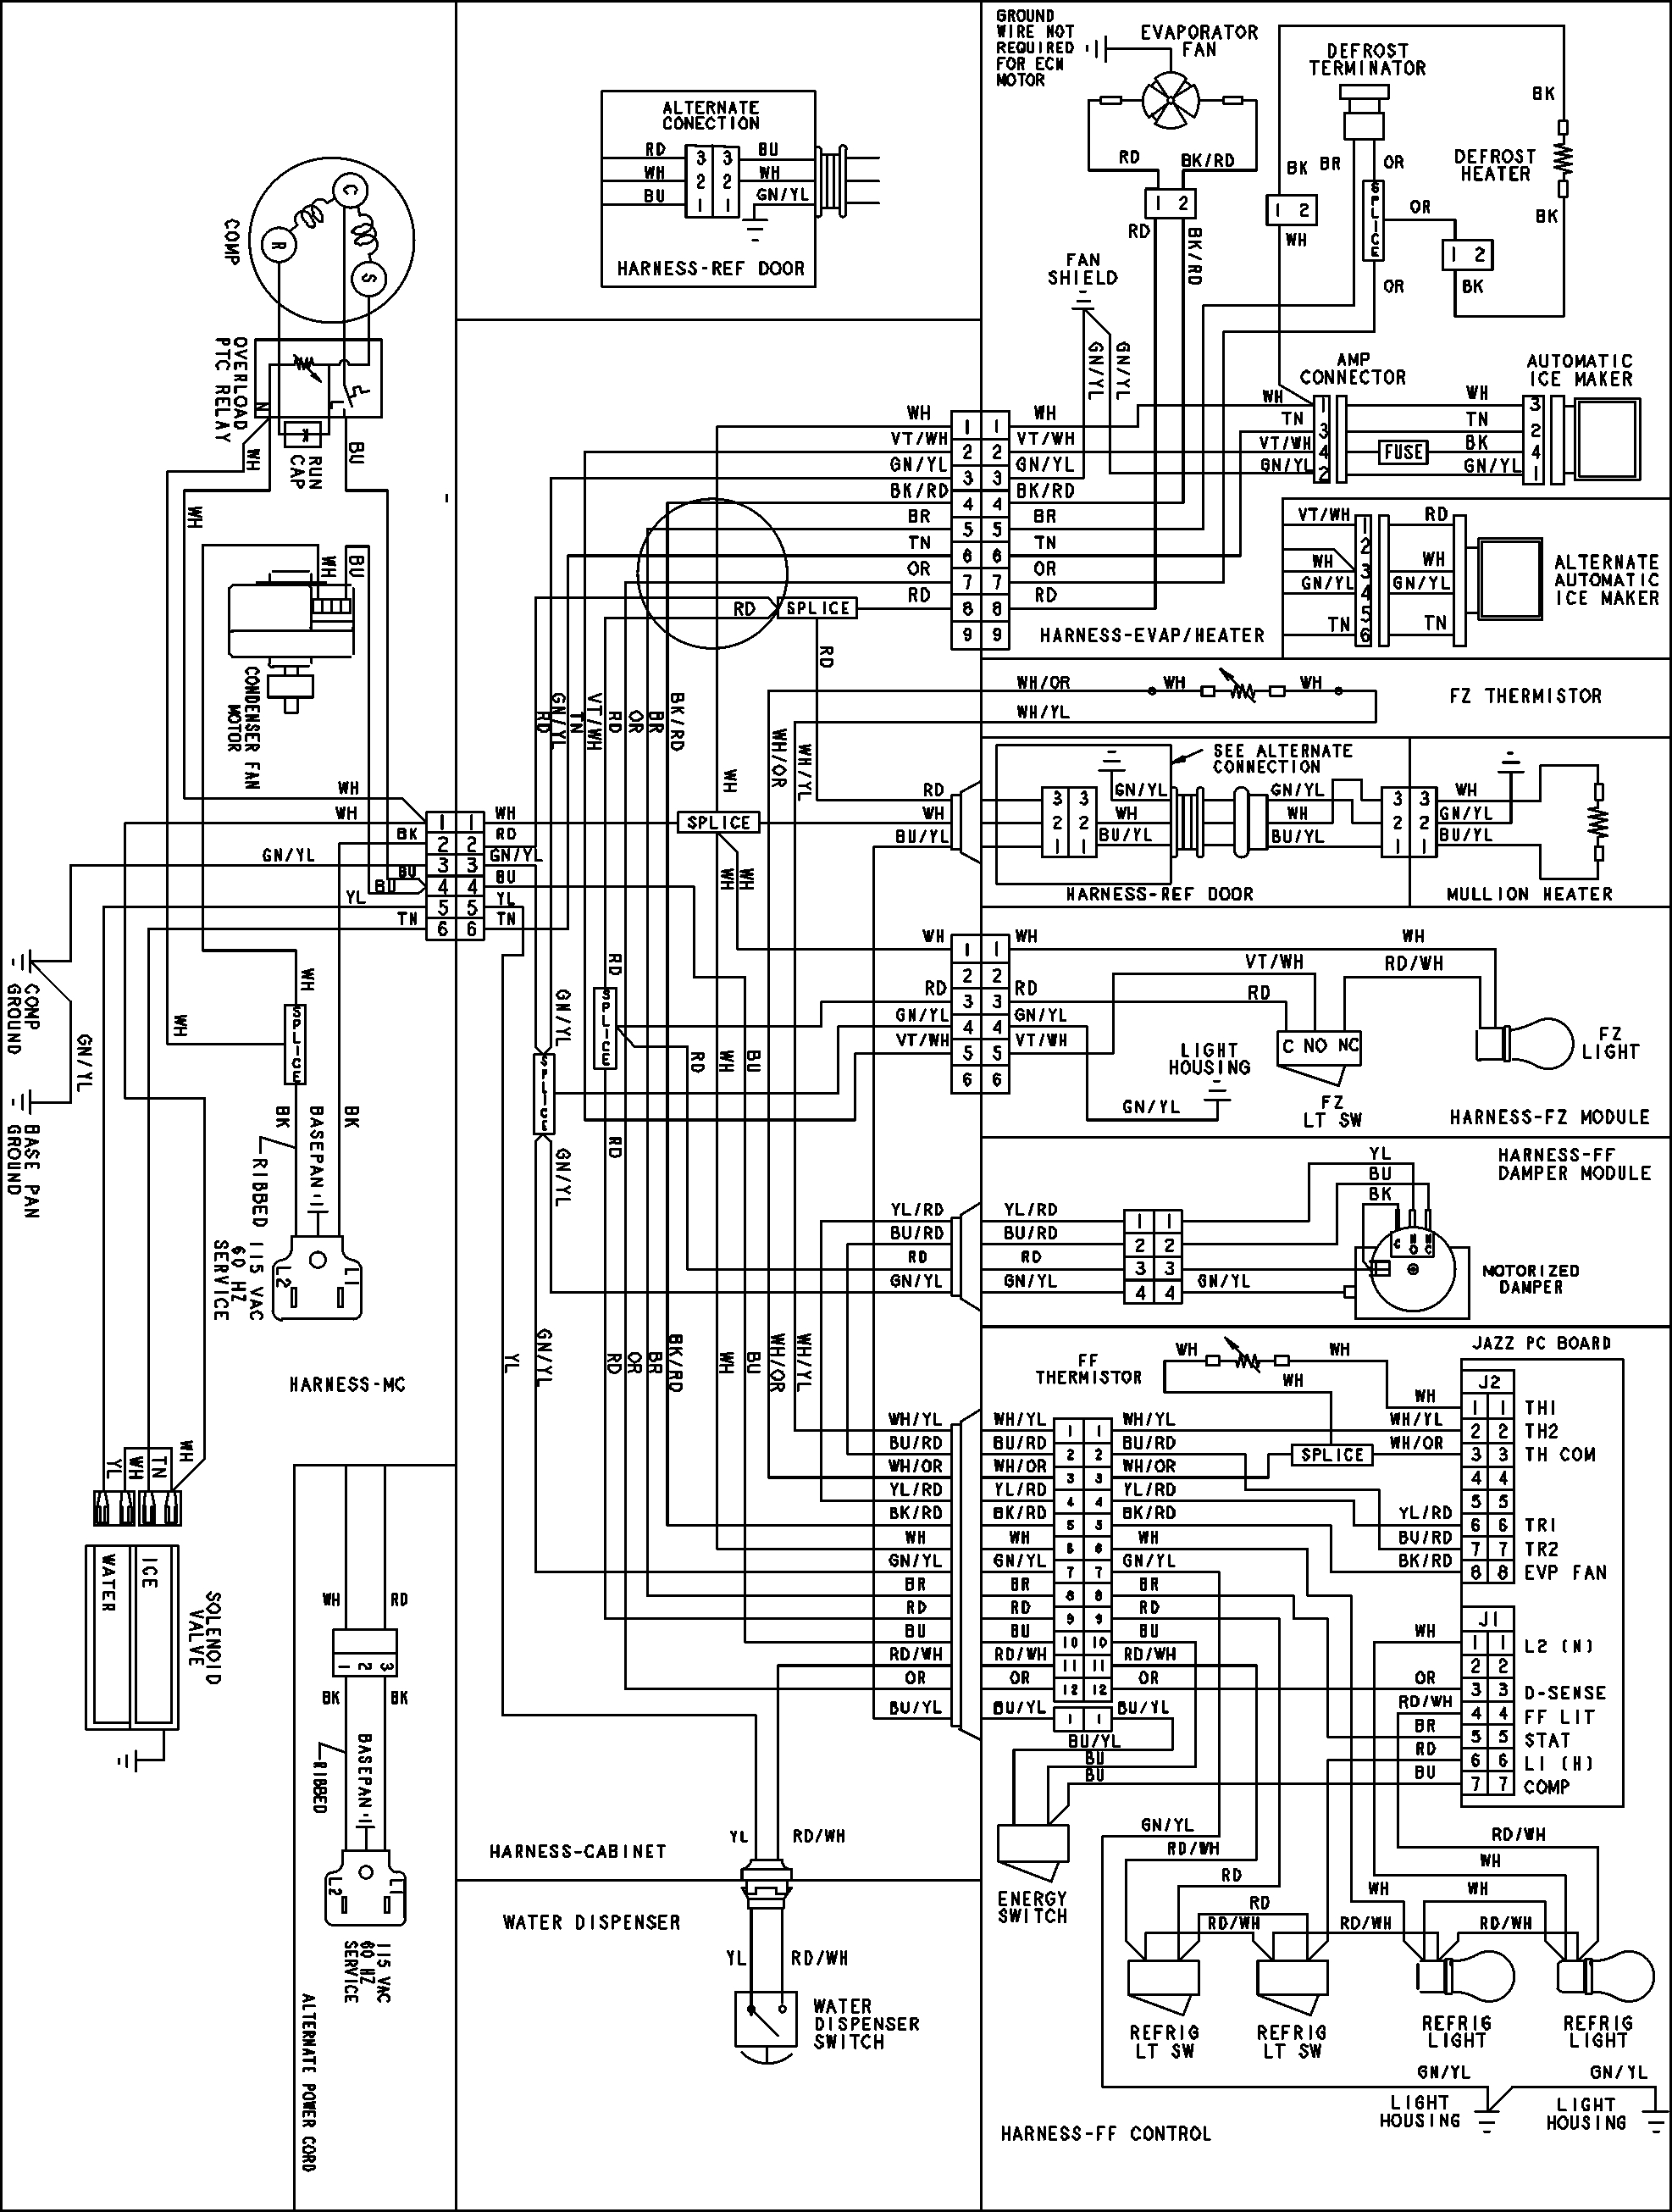 M Unit Wiring Diagram